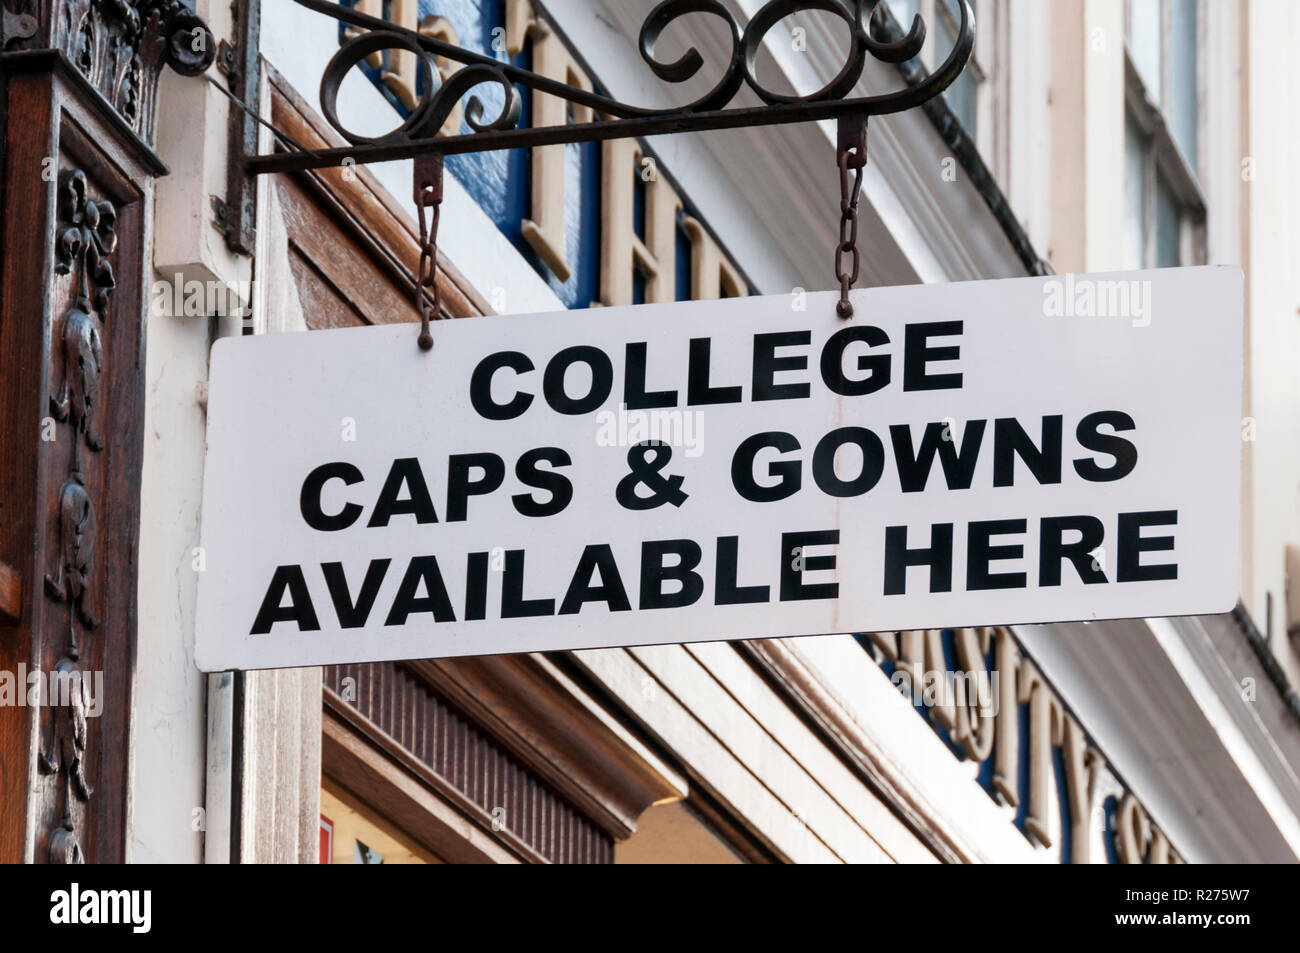 A sign in Oxford reads College Caps & Gowns available here. - Stock Image